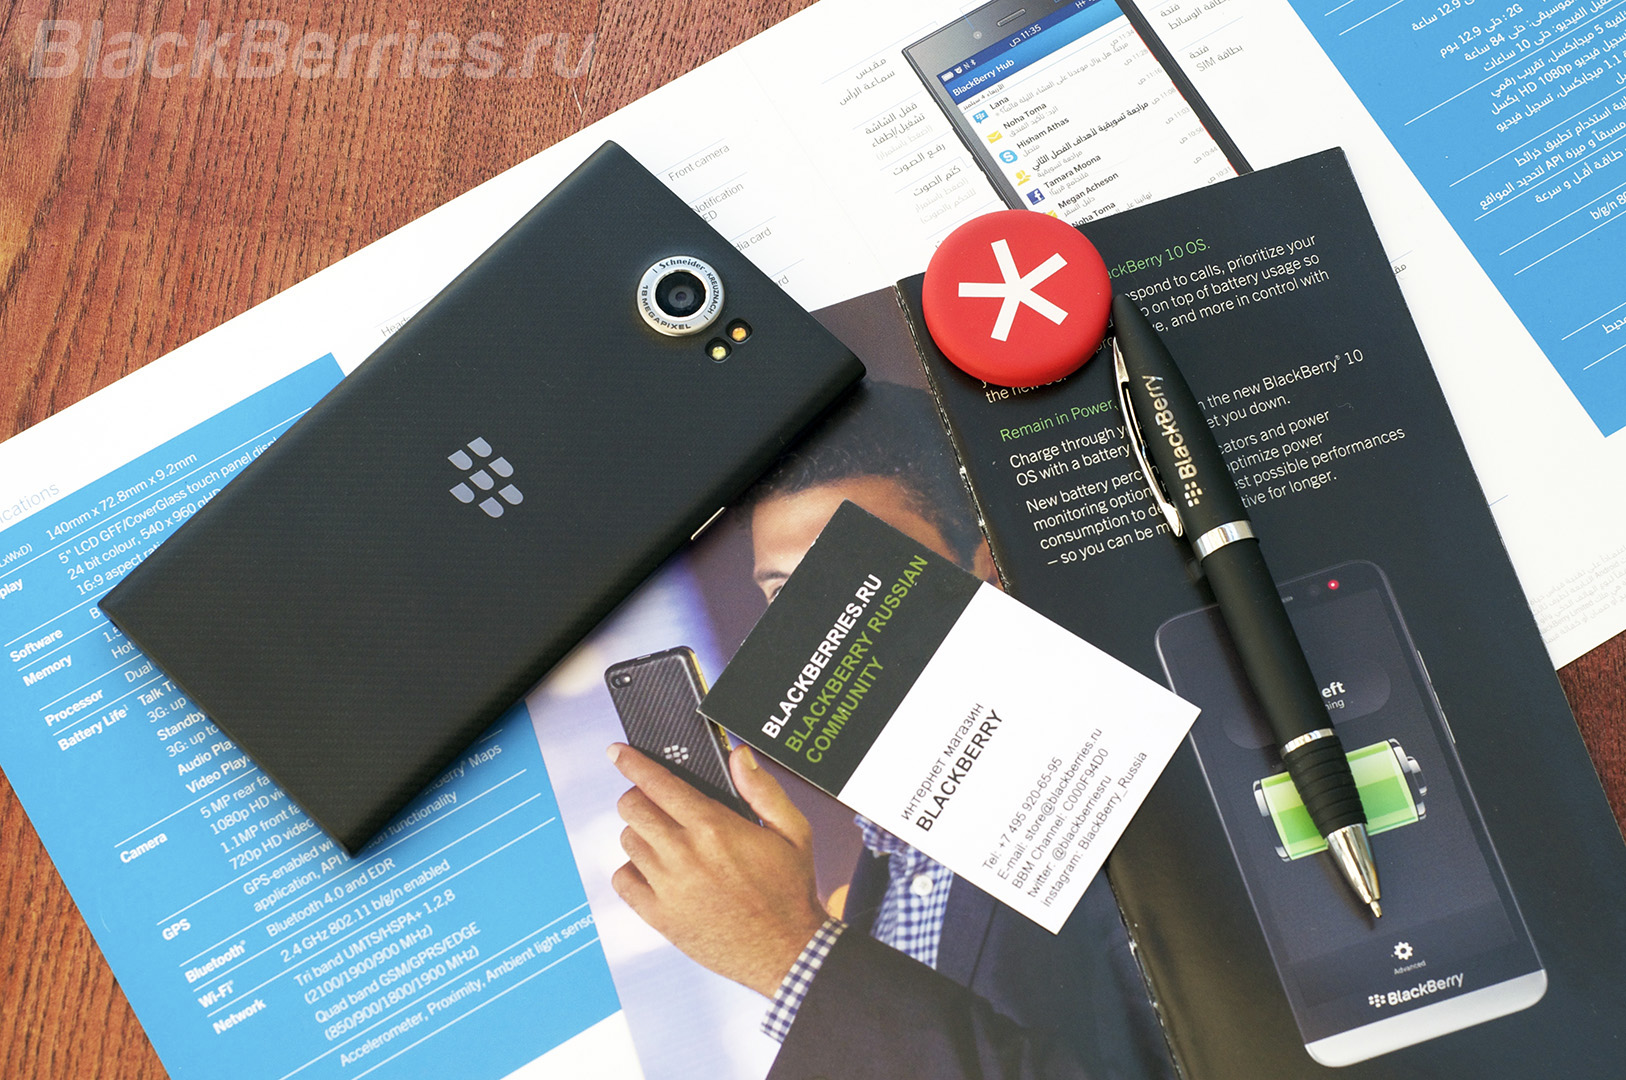 BlackBerry-Priv-5-tips-3